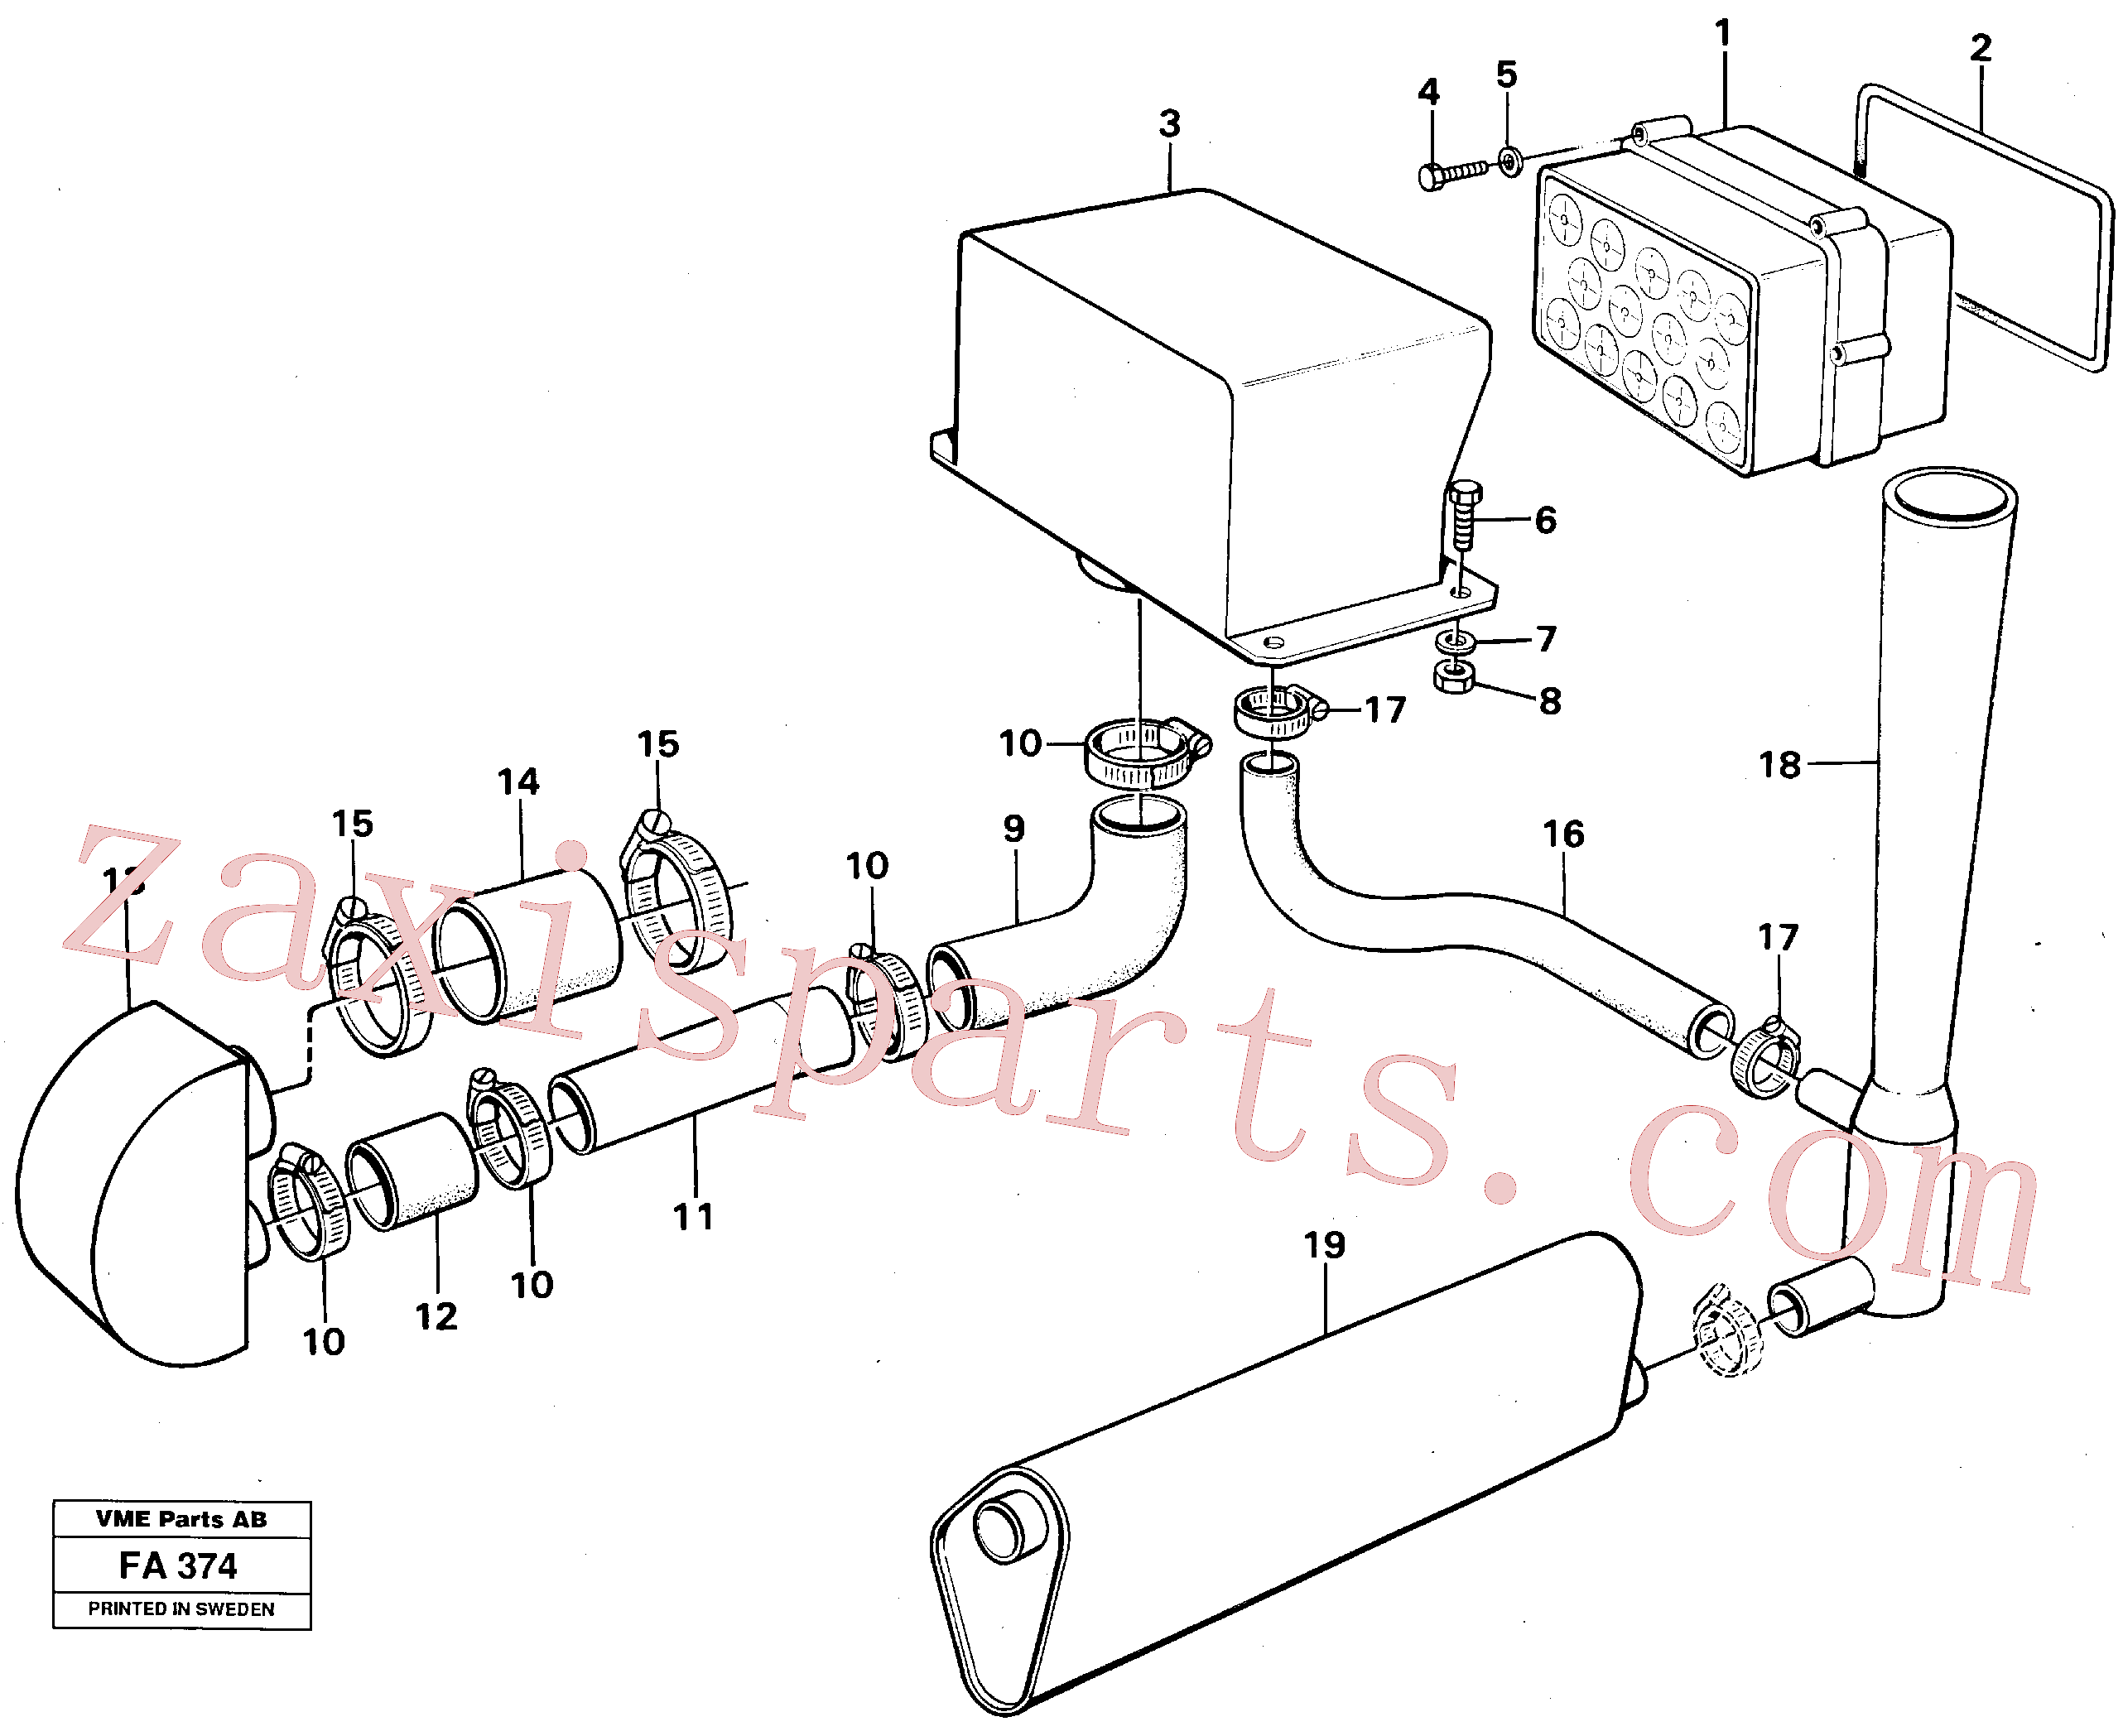 VOE14248986 for Volvo Precyclone with ejector(FA374 assembly)